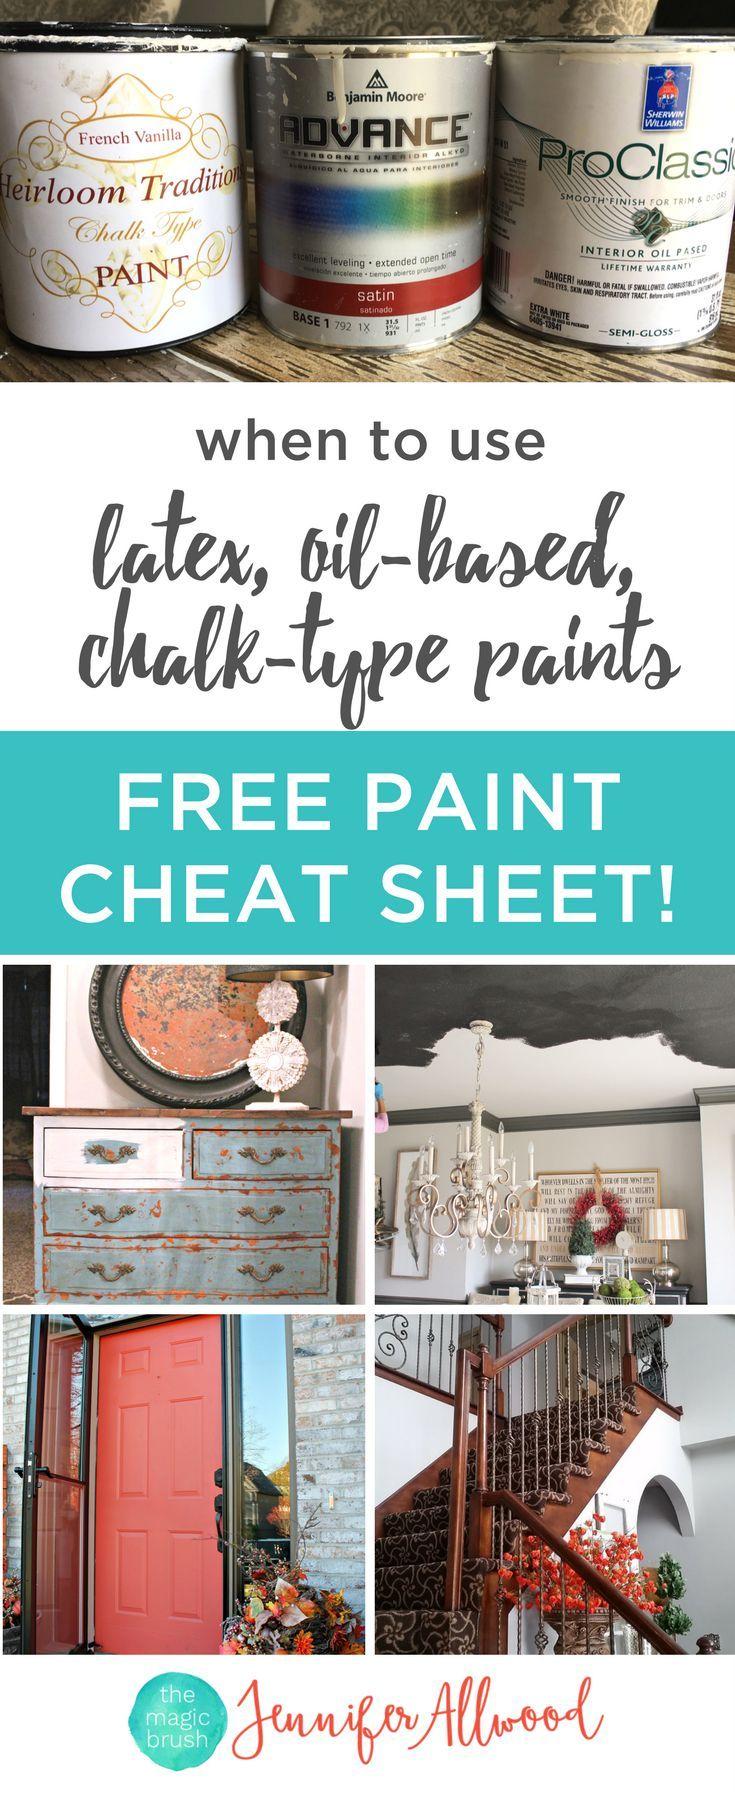 Free Paint Type guide on what Kind of Paint to use and when to use ...